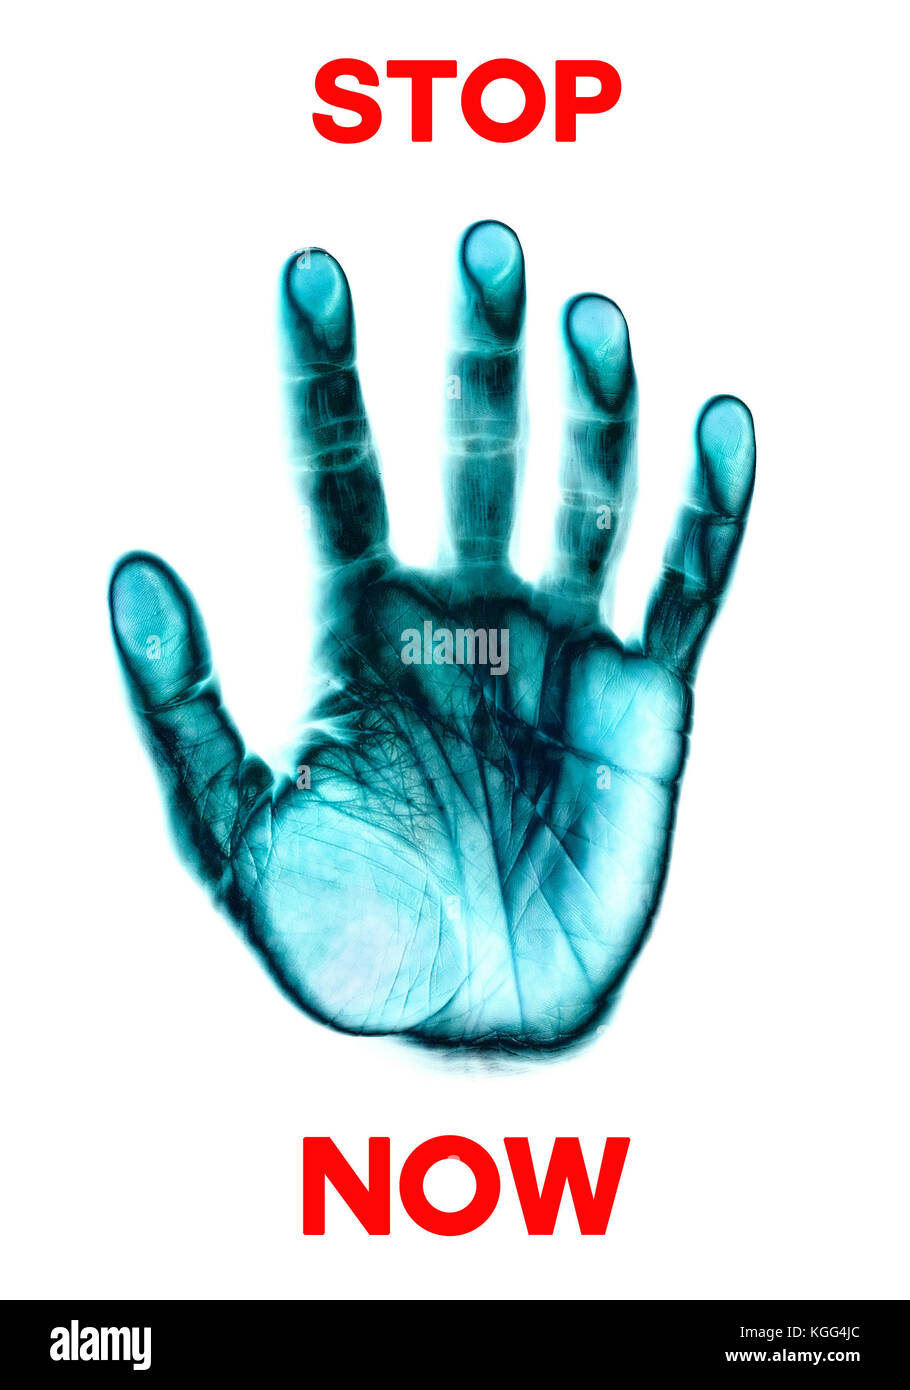 stop now words and hand print - Stock Image